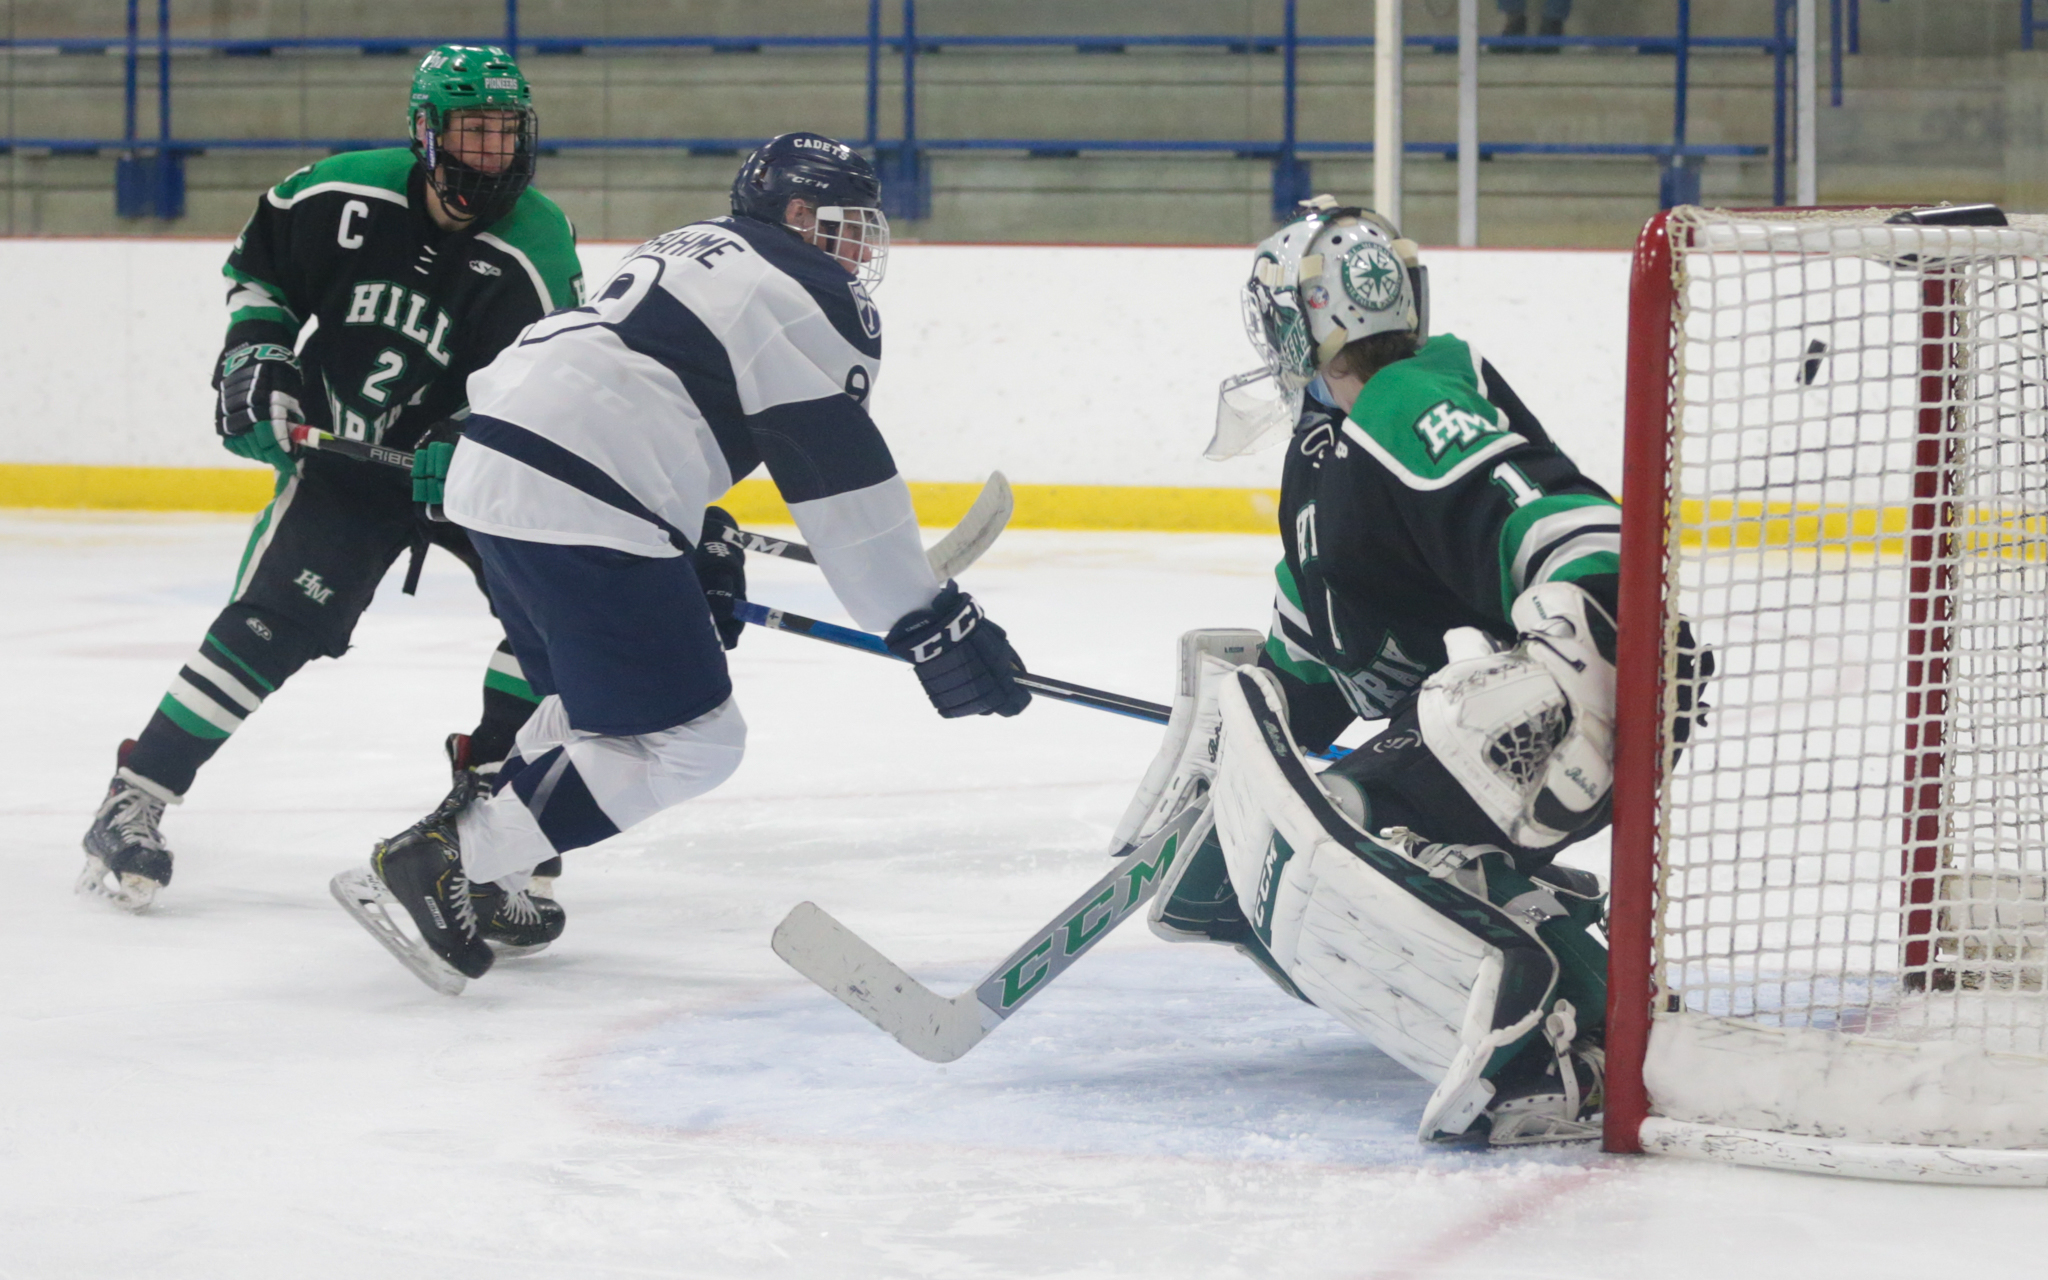 St. Thomas Academy's Tyler Grahme (9) flips a backhand past Hill-Murray goalie Nick Erickson (1) early in the first period Tuesday night. The Cadets fell at home to the Pioneers 7-3. Photo by Jeff Lawler, SportsEngine